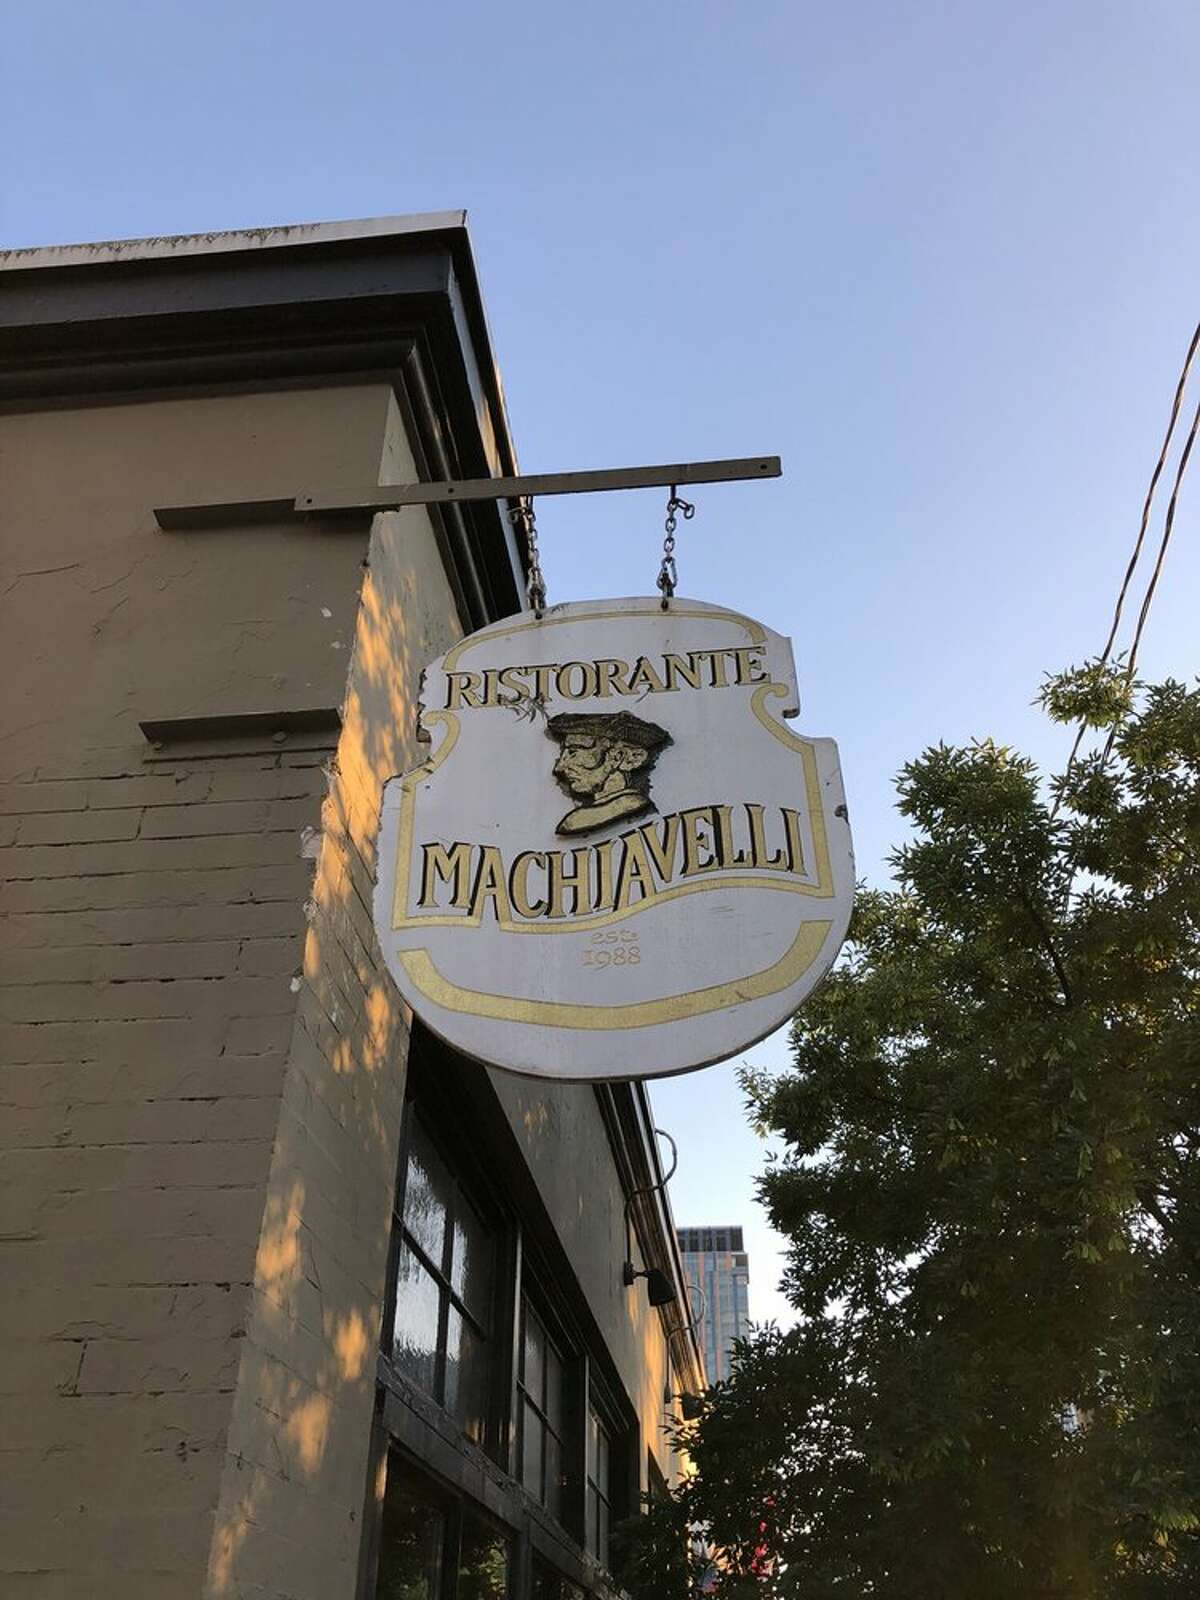 Ristorante Machiavelli celebrated 31 years of business in August of 2019.